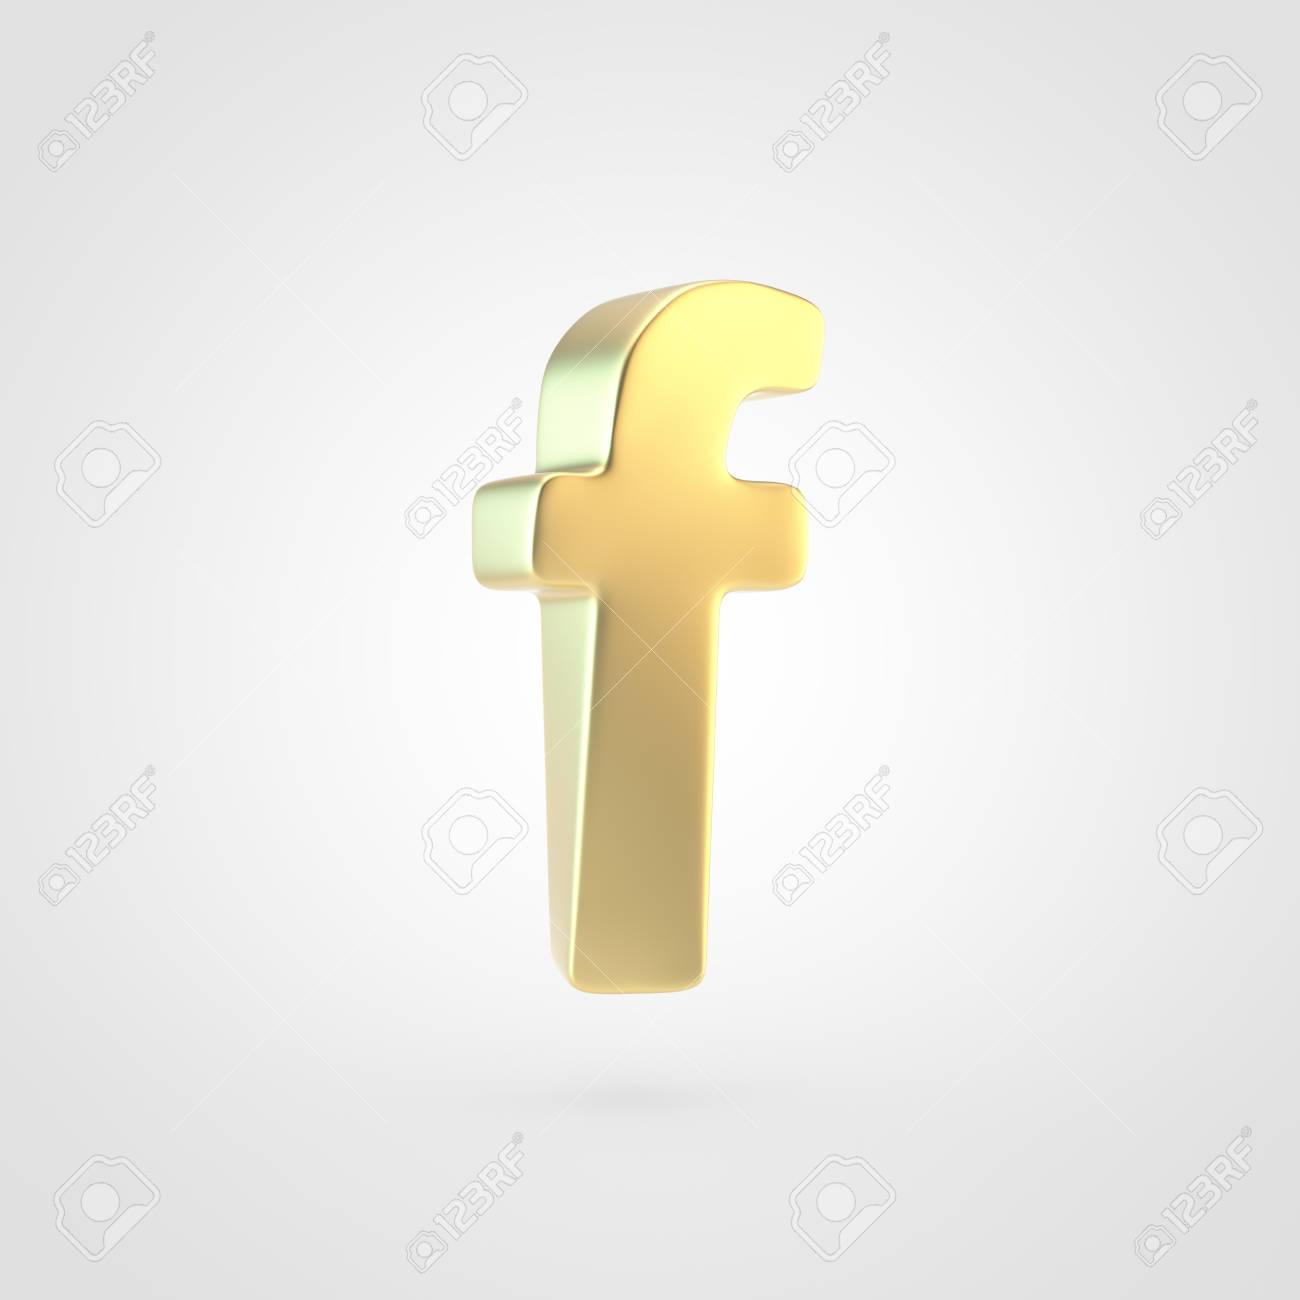 Golden Letter F Lowercase 3D Rendering Of Matted Golden Font 1300x1300